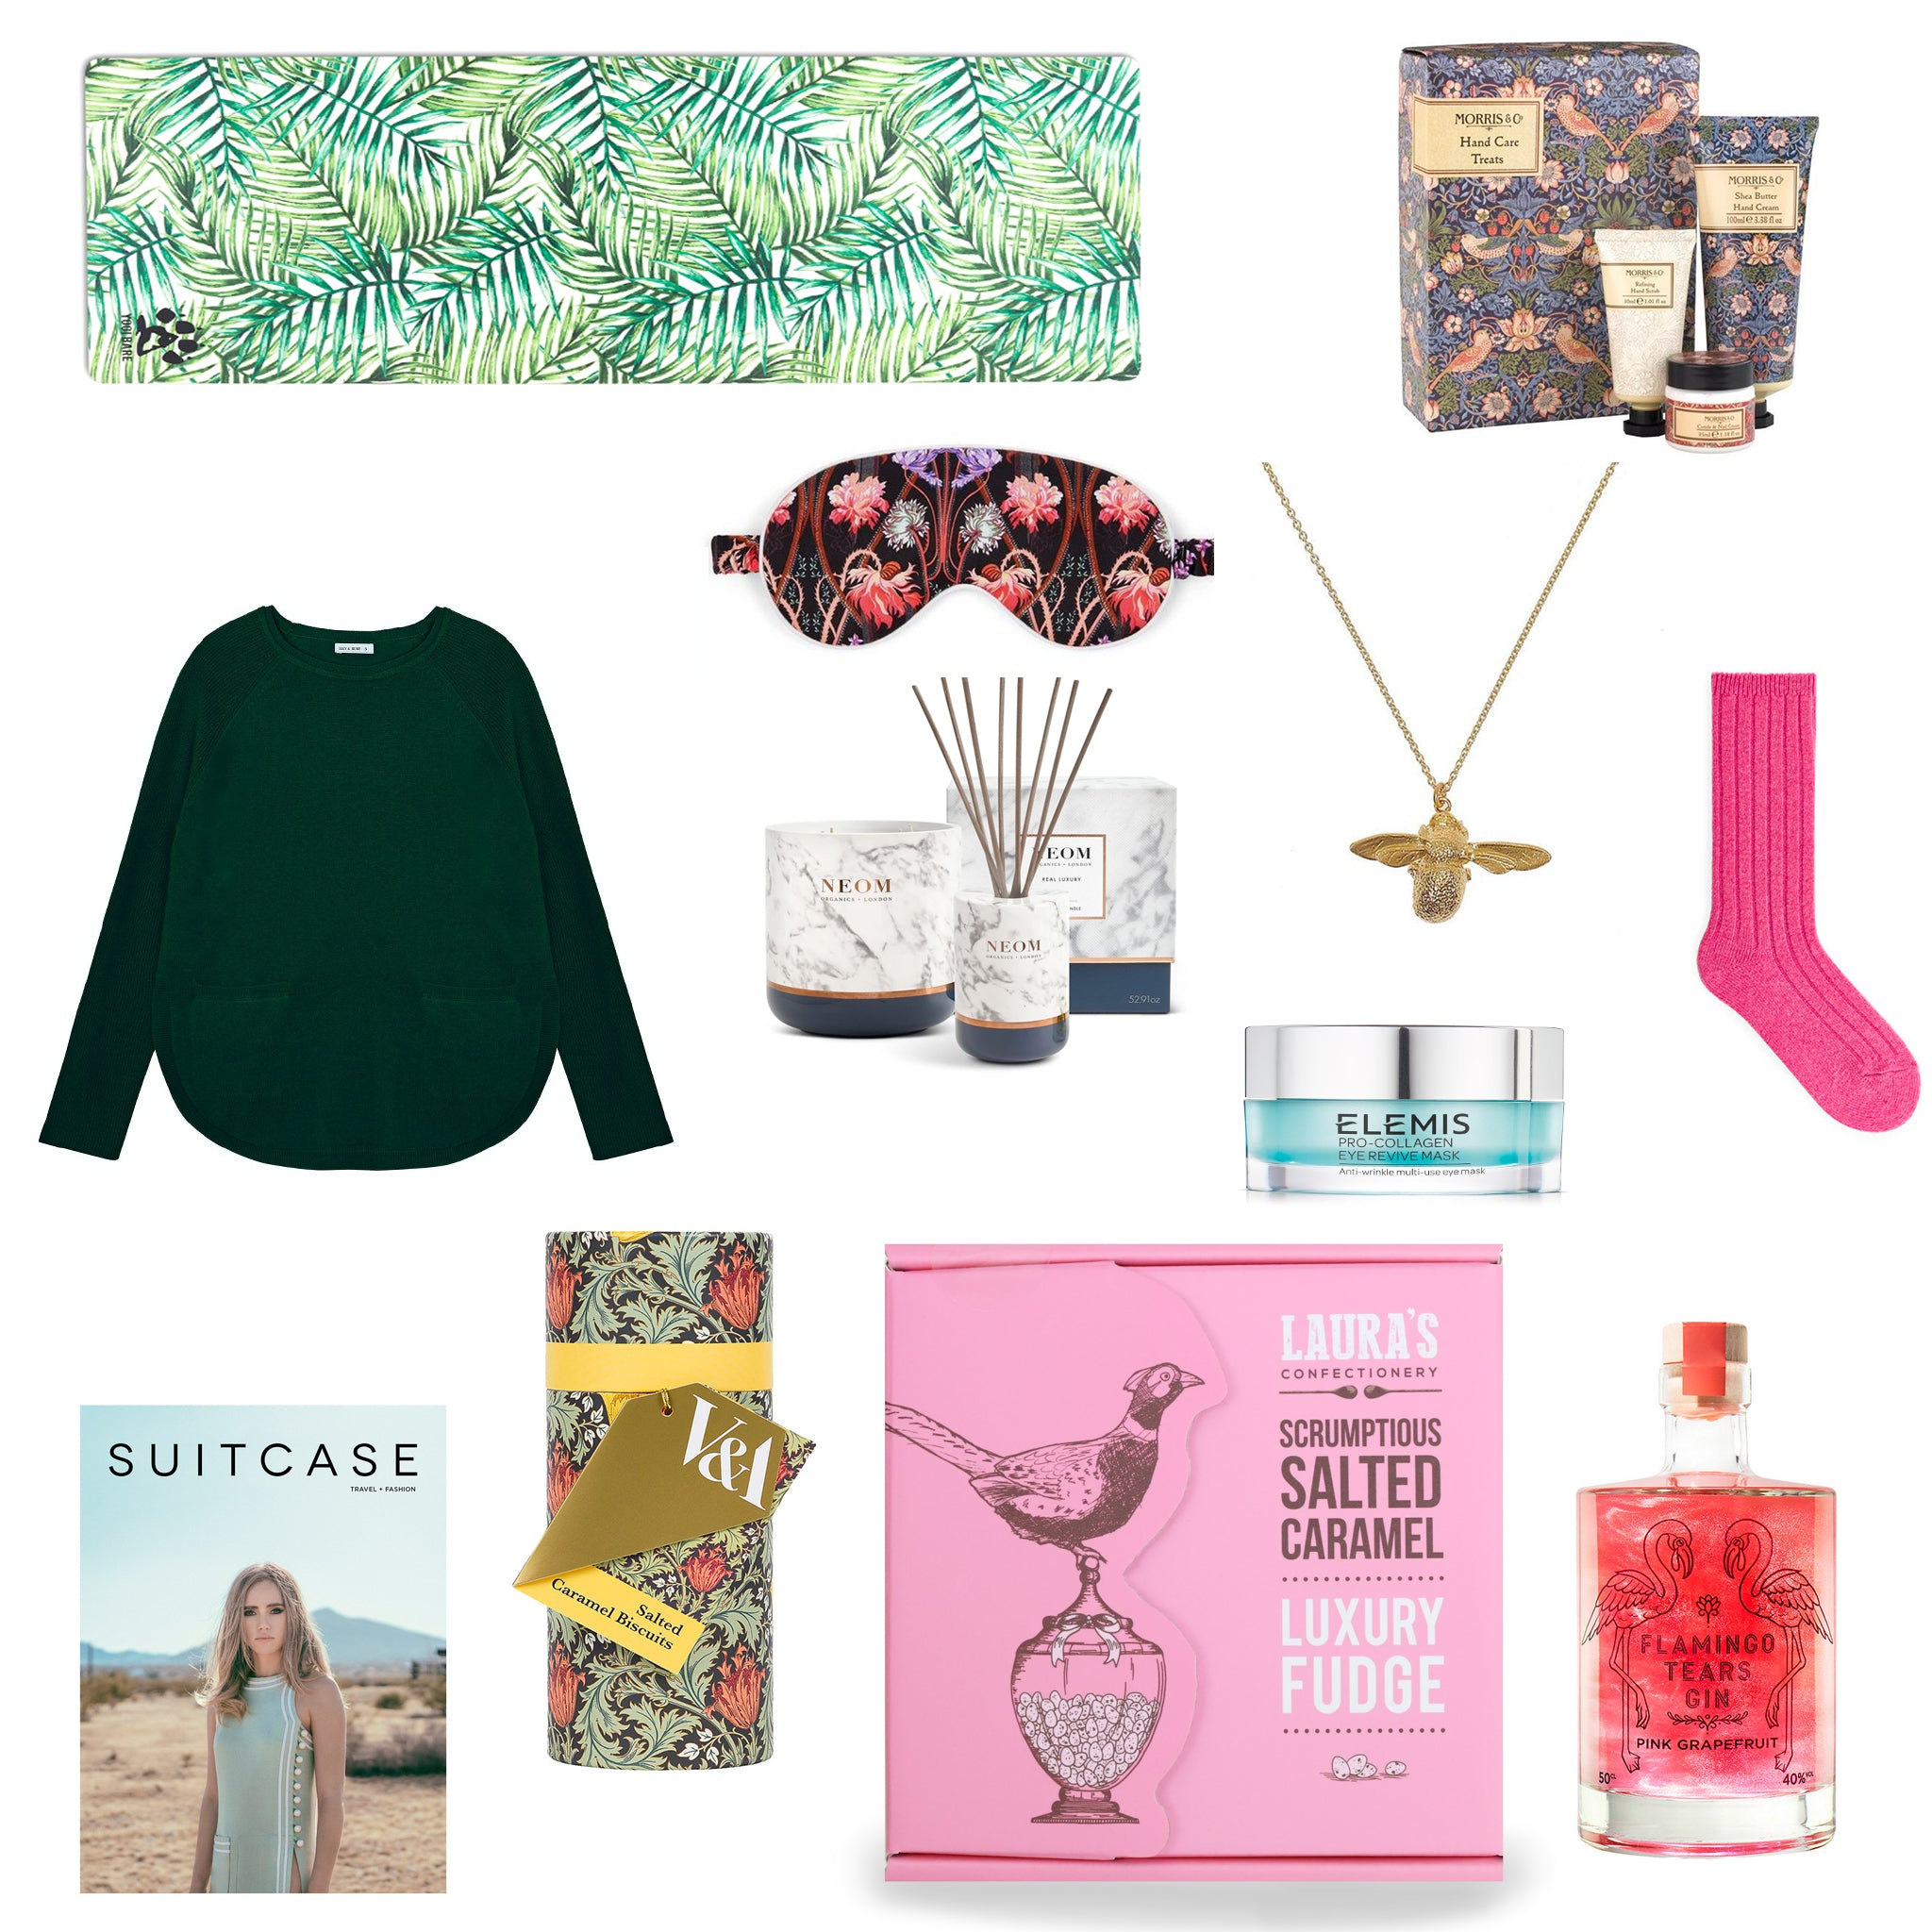 Our Mother's Day Gift Guide 2020